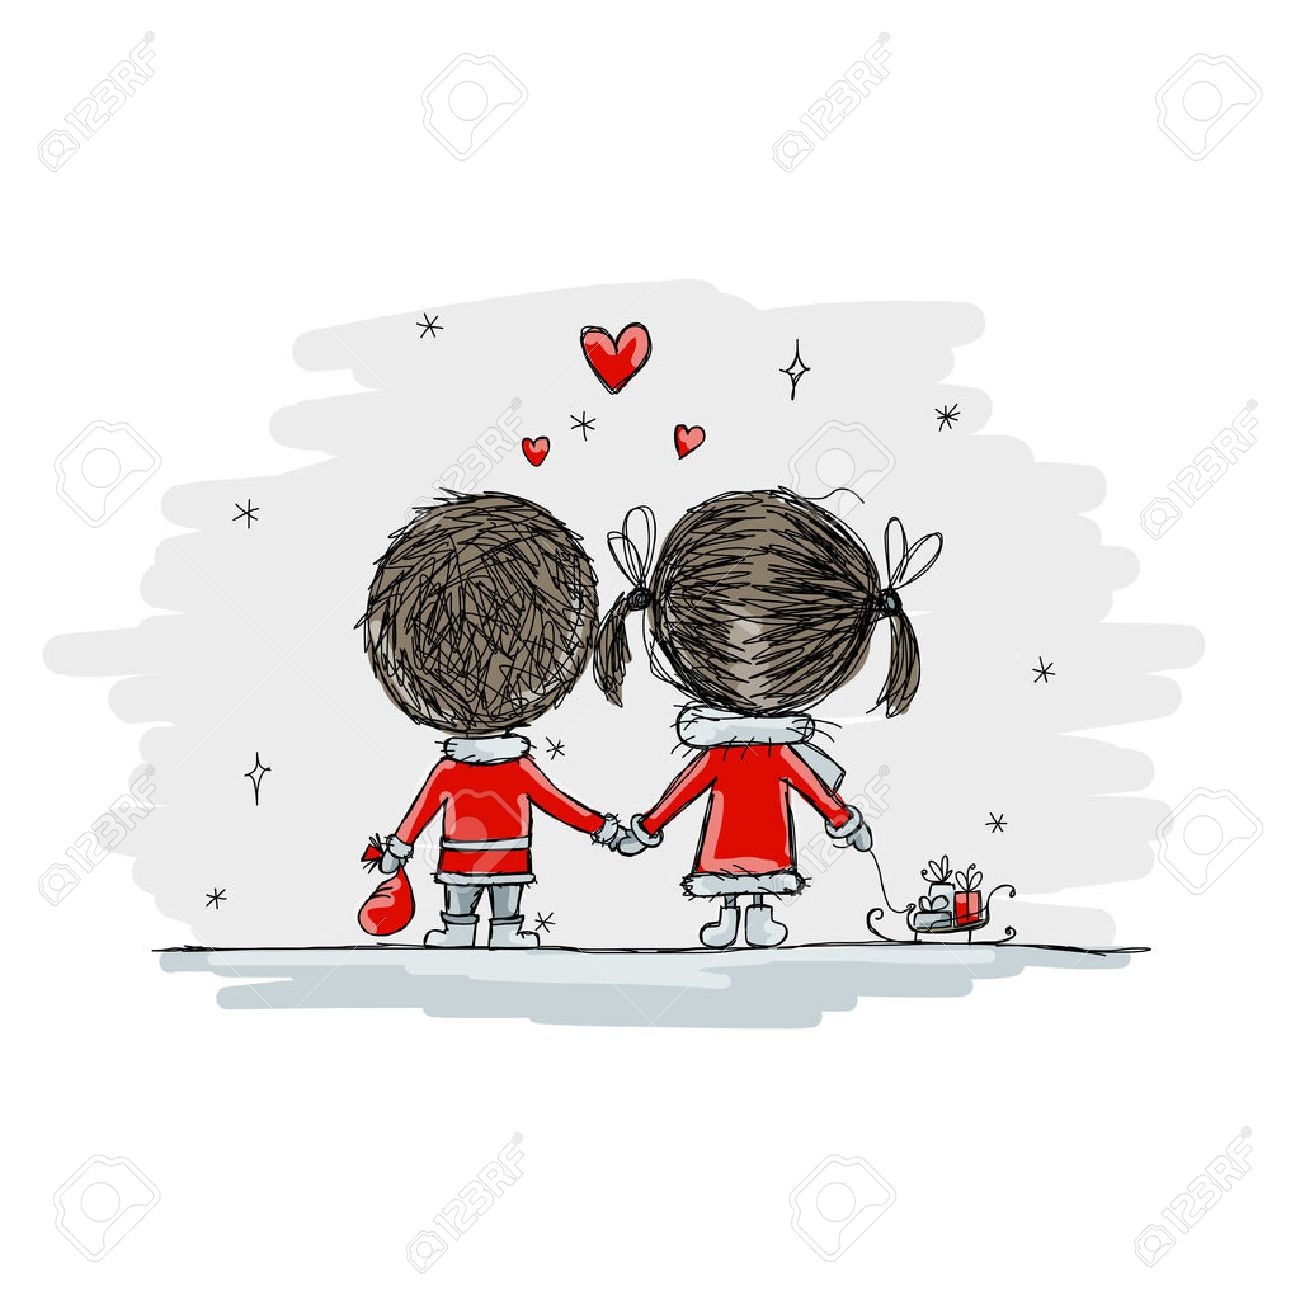 Couple in love together, christmas illustration for your design, vector Stock Vector - 45592569